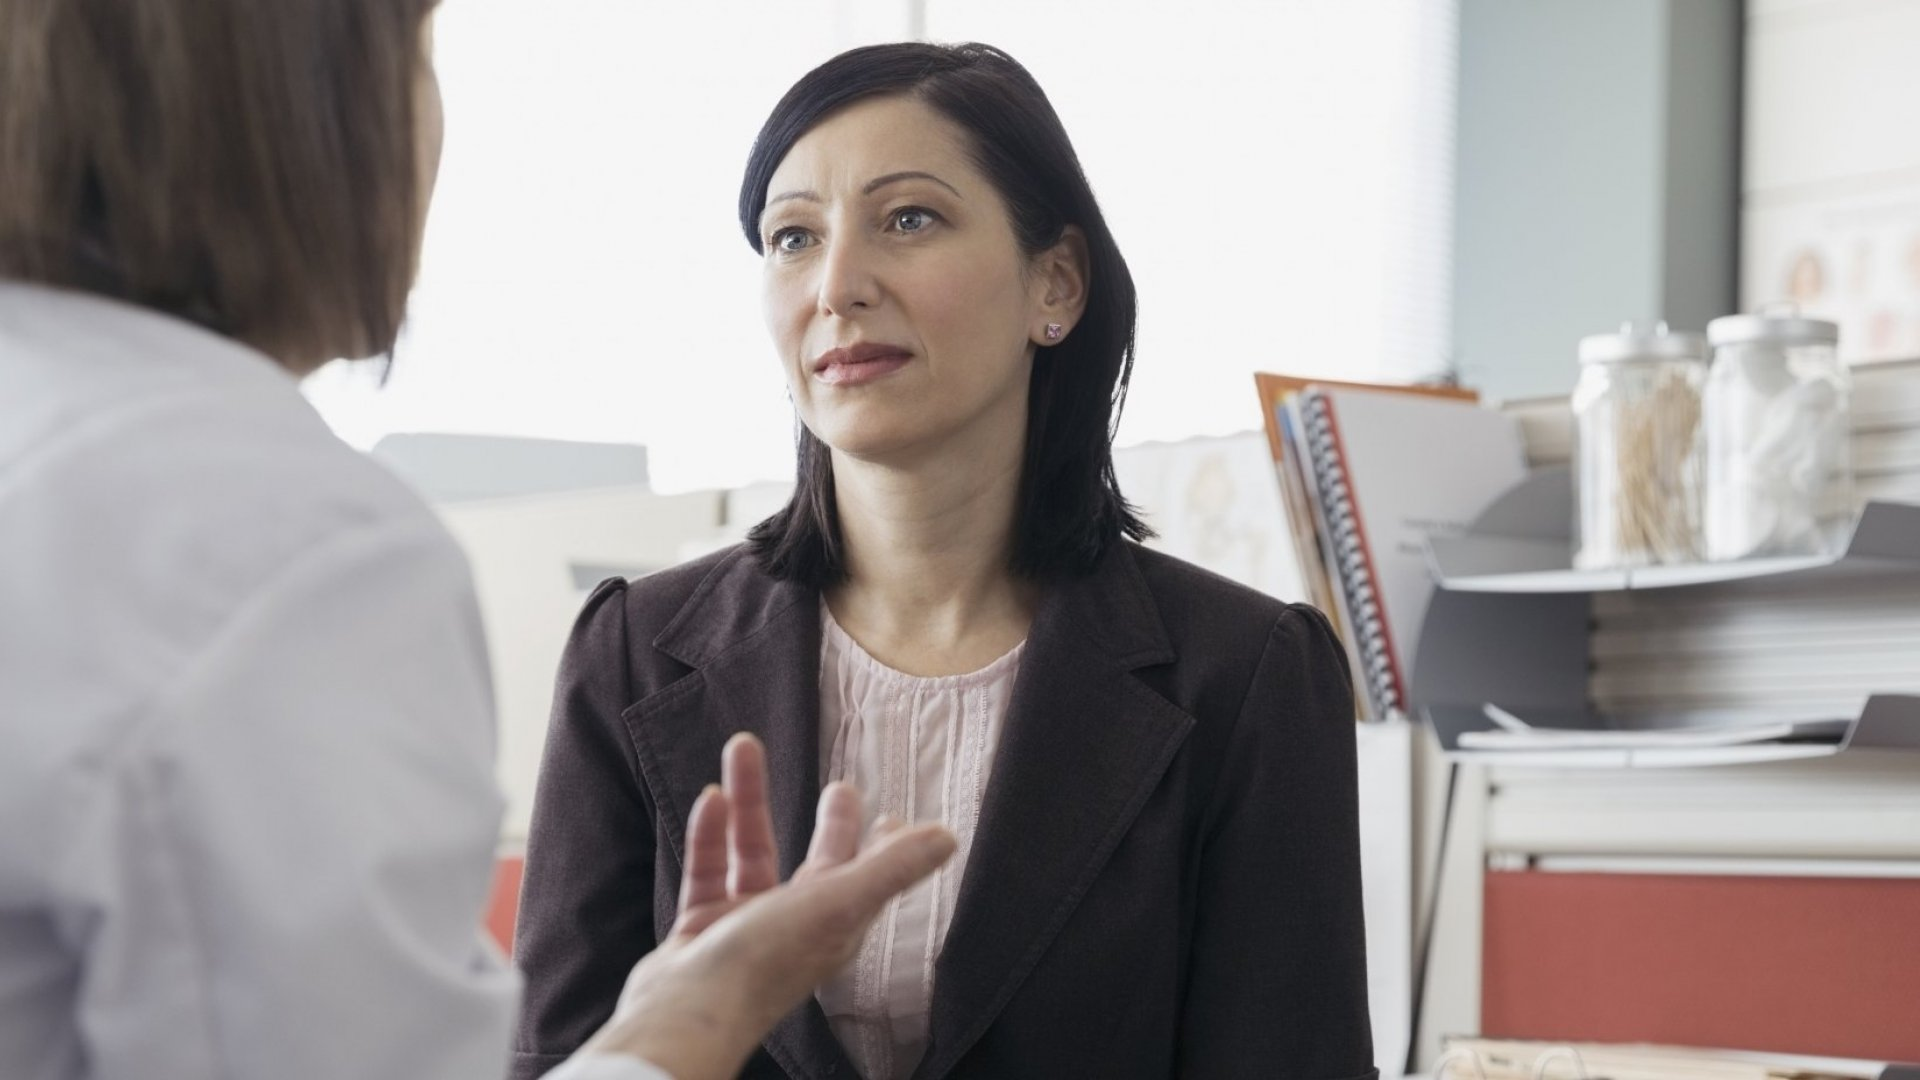 3 Phrases You Should Never Say When Compromising